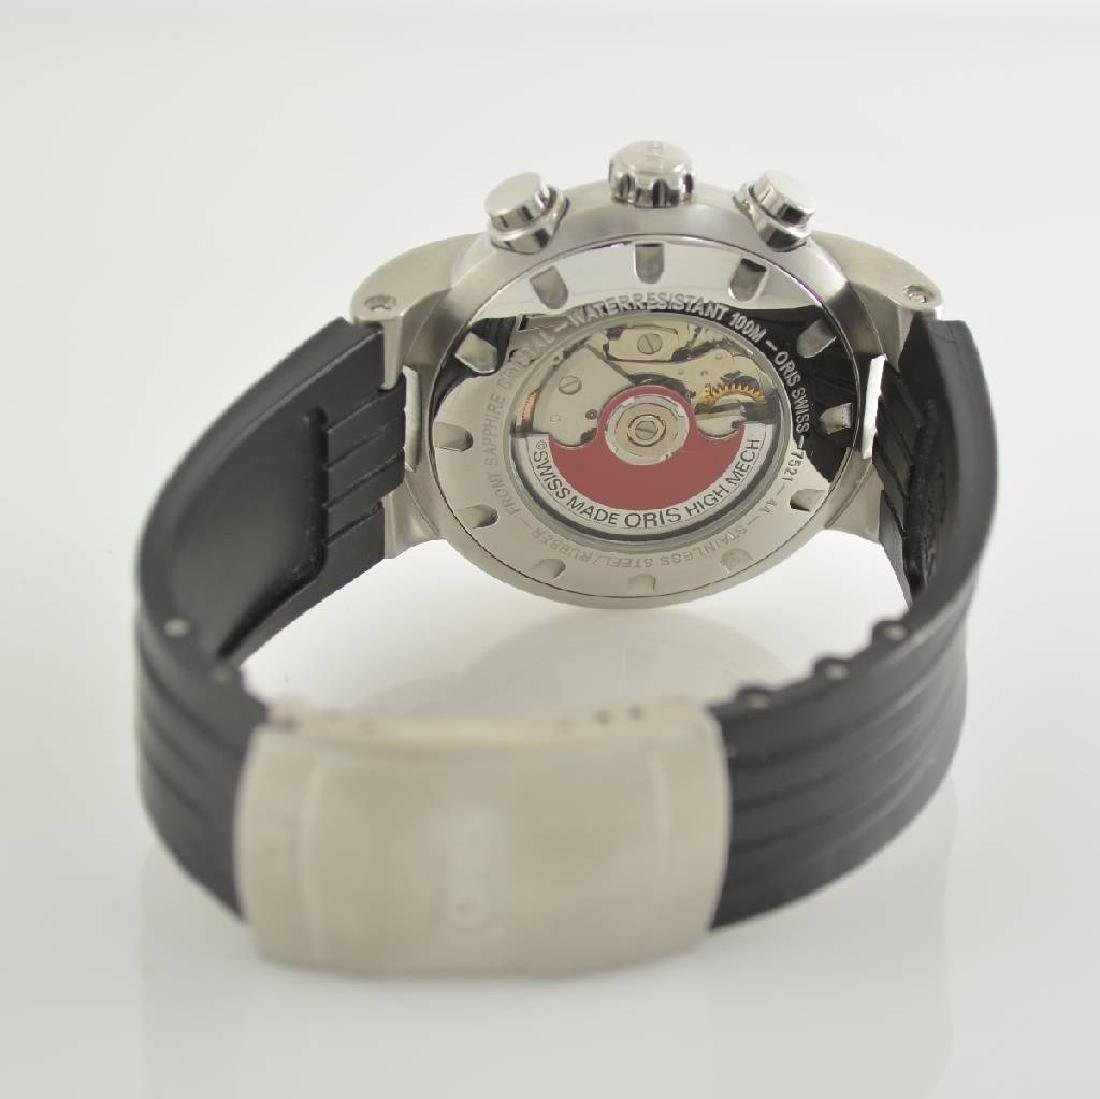 ORIS chronograph TT1, self winding - 5